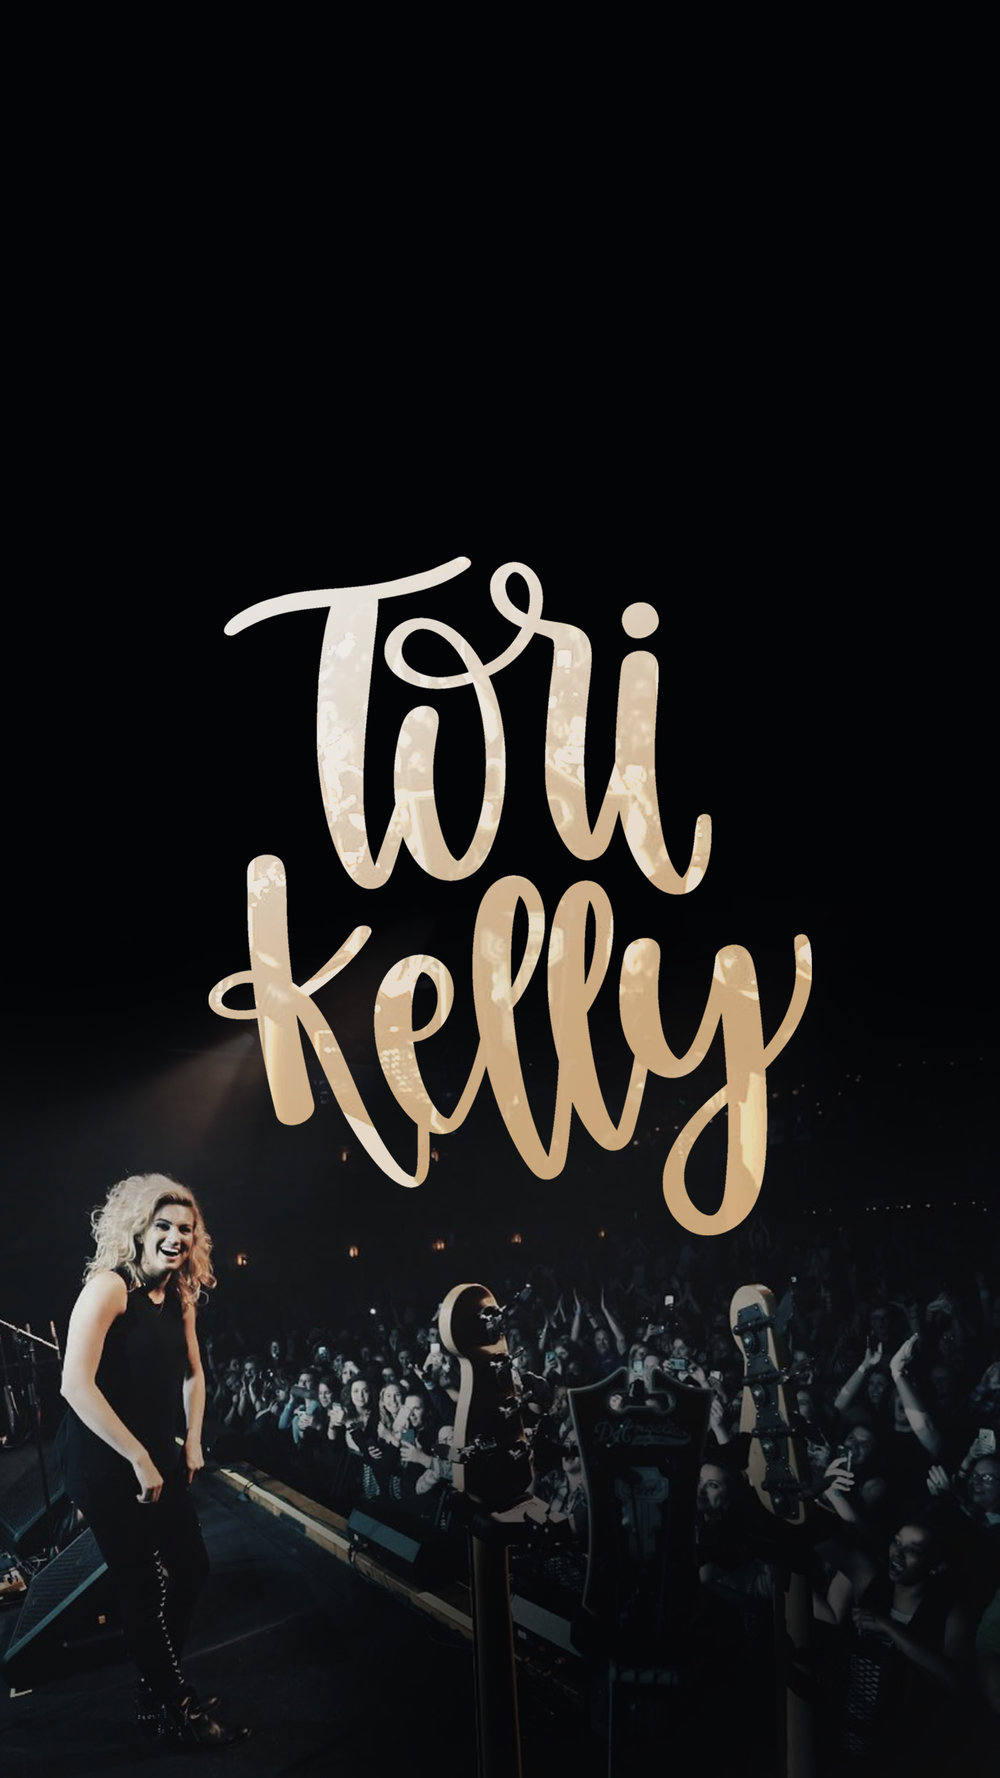 torikelly-lockscreen5.jpg